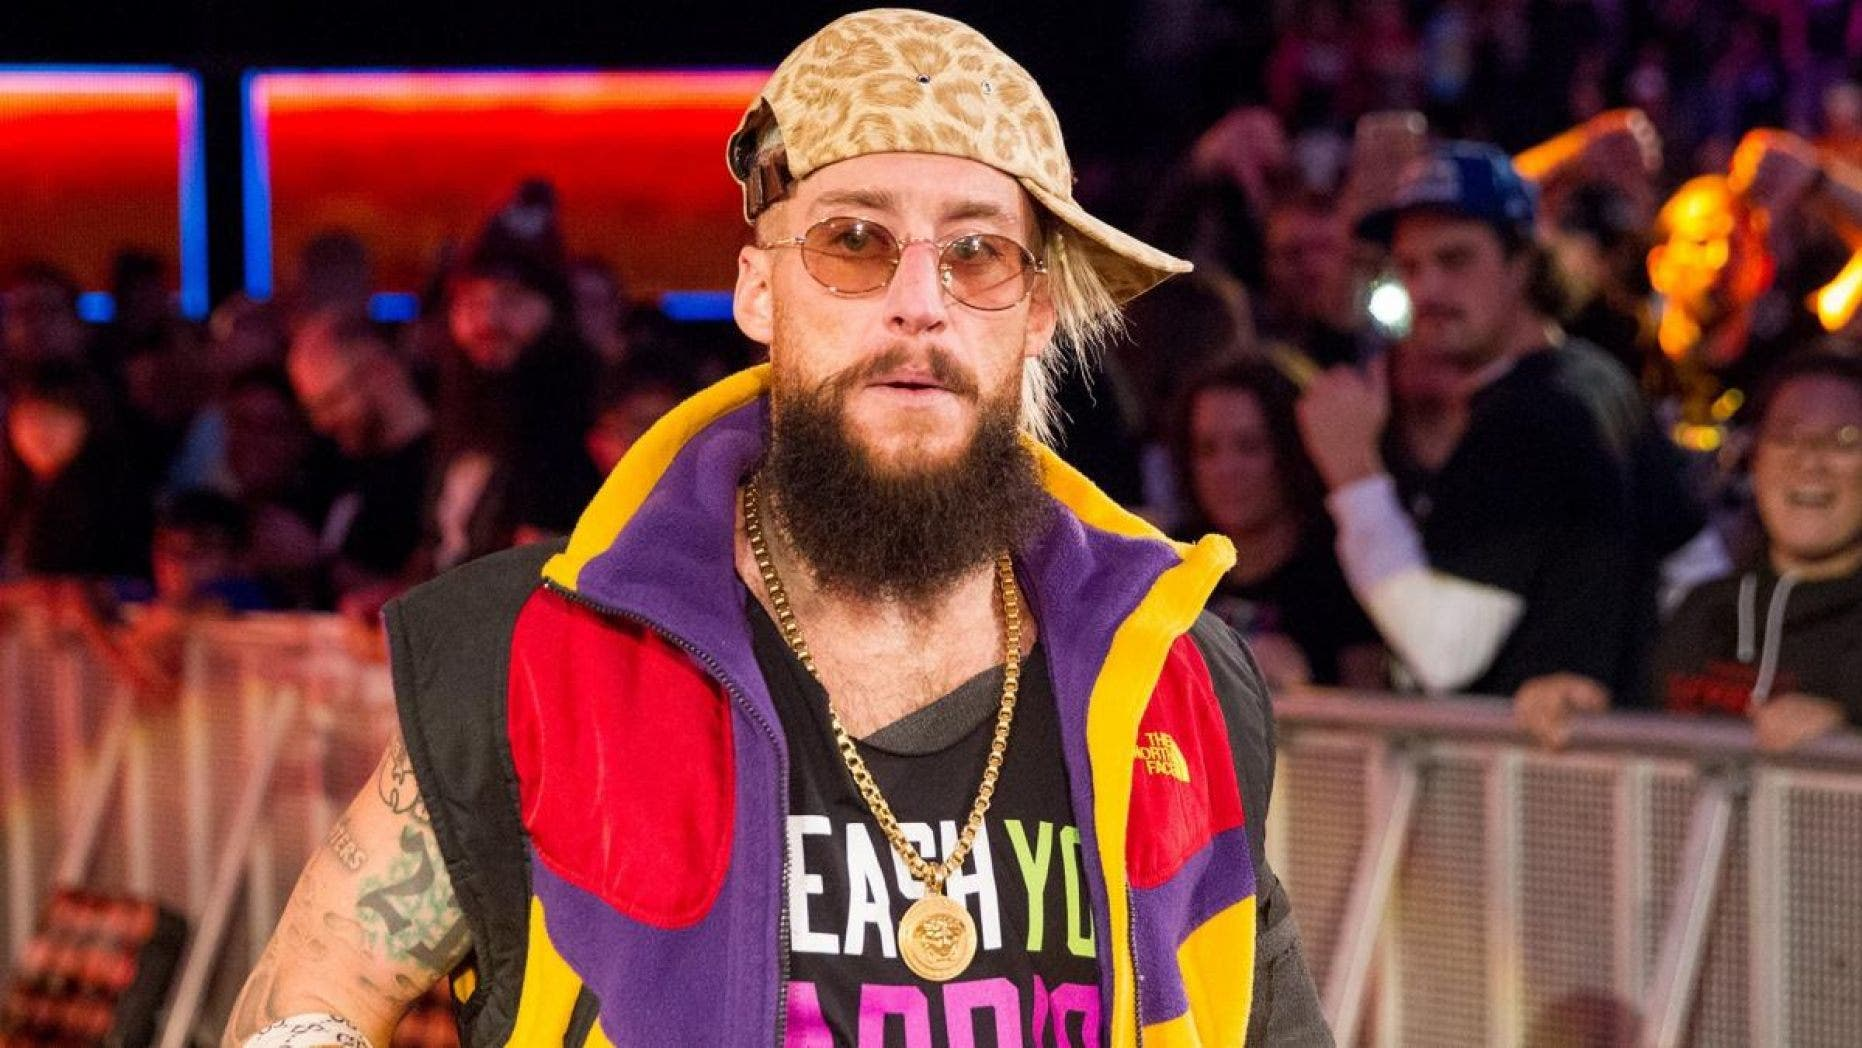 Enzo Amore, real name Eric Arndt, was booted from a flight to Los Angeles on Thursday.